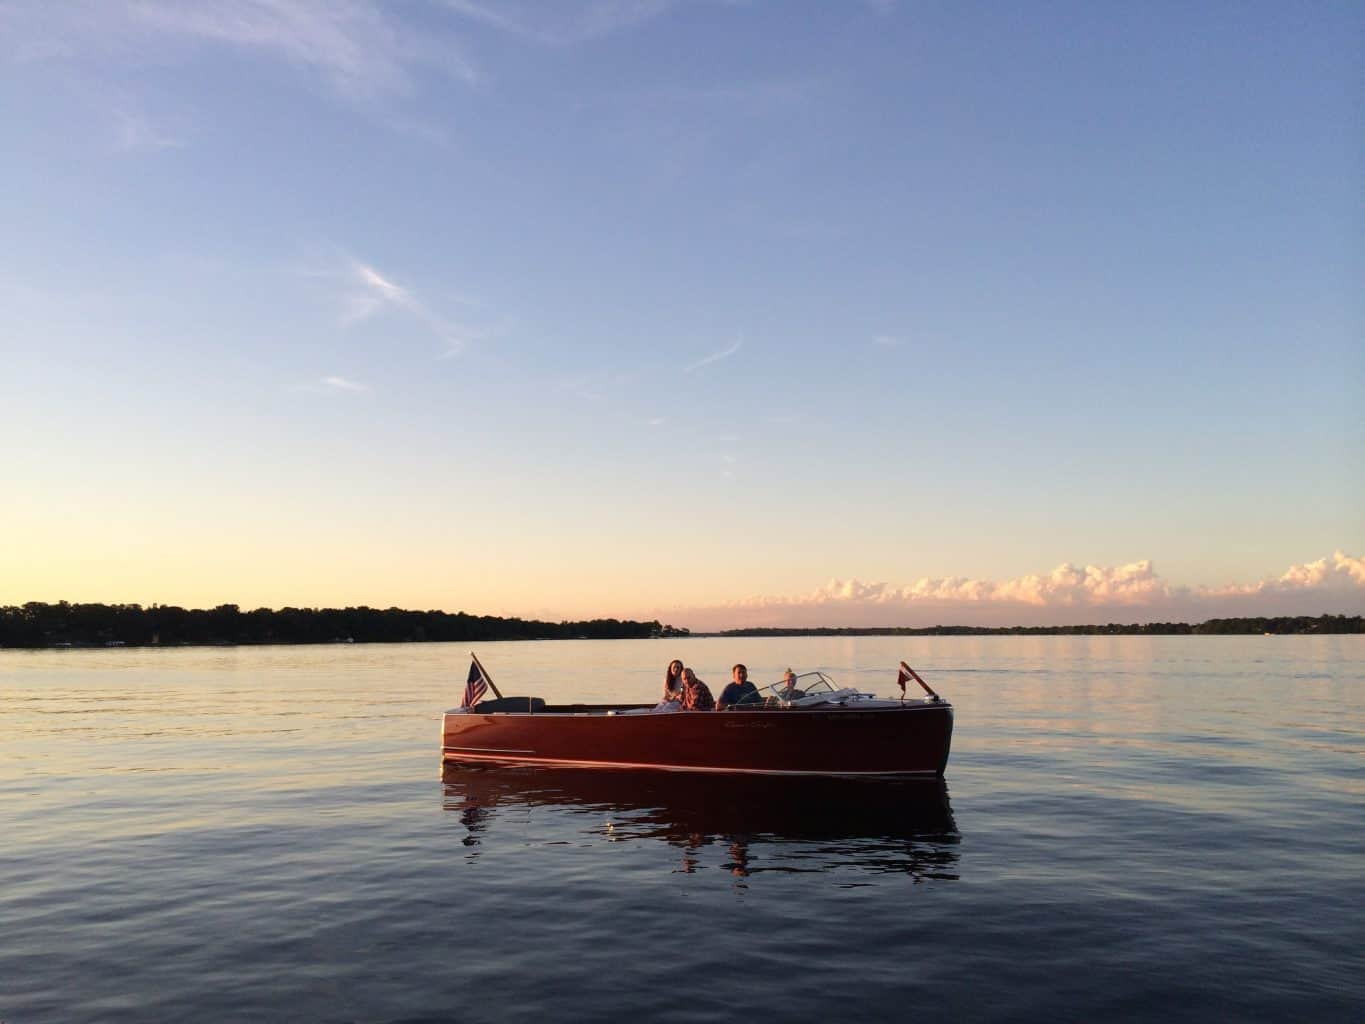 Chris-Craft on The Chain of Lakes